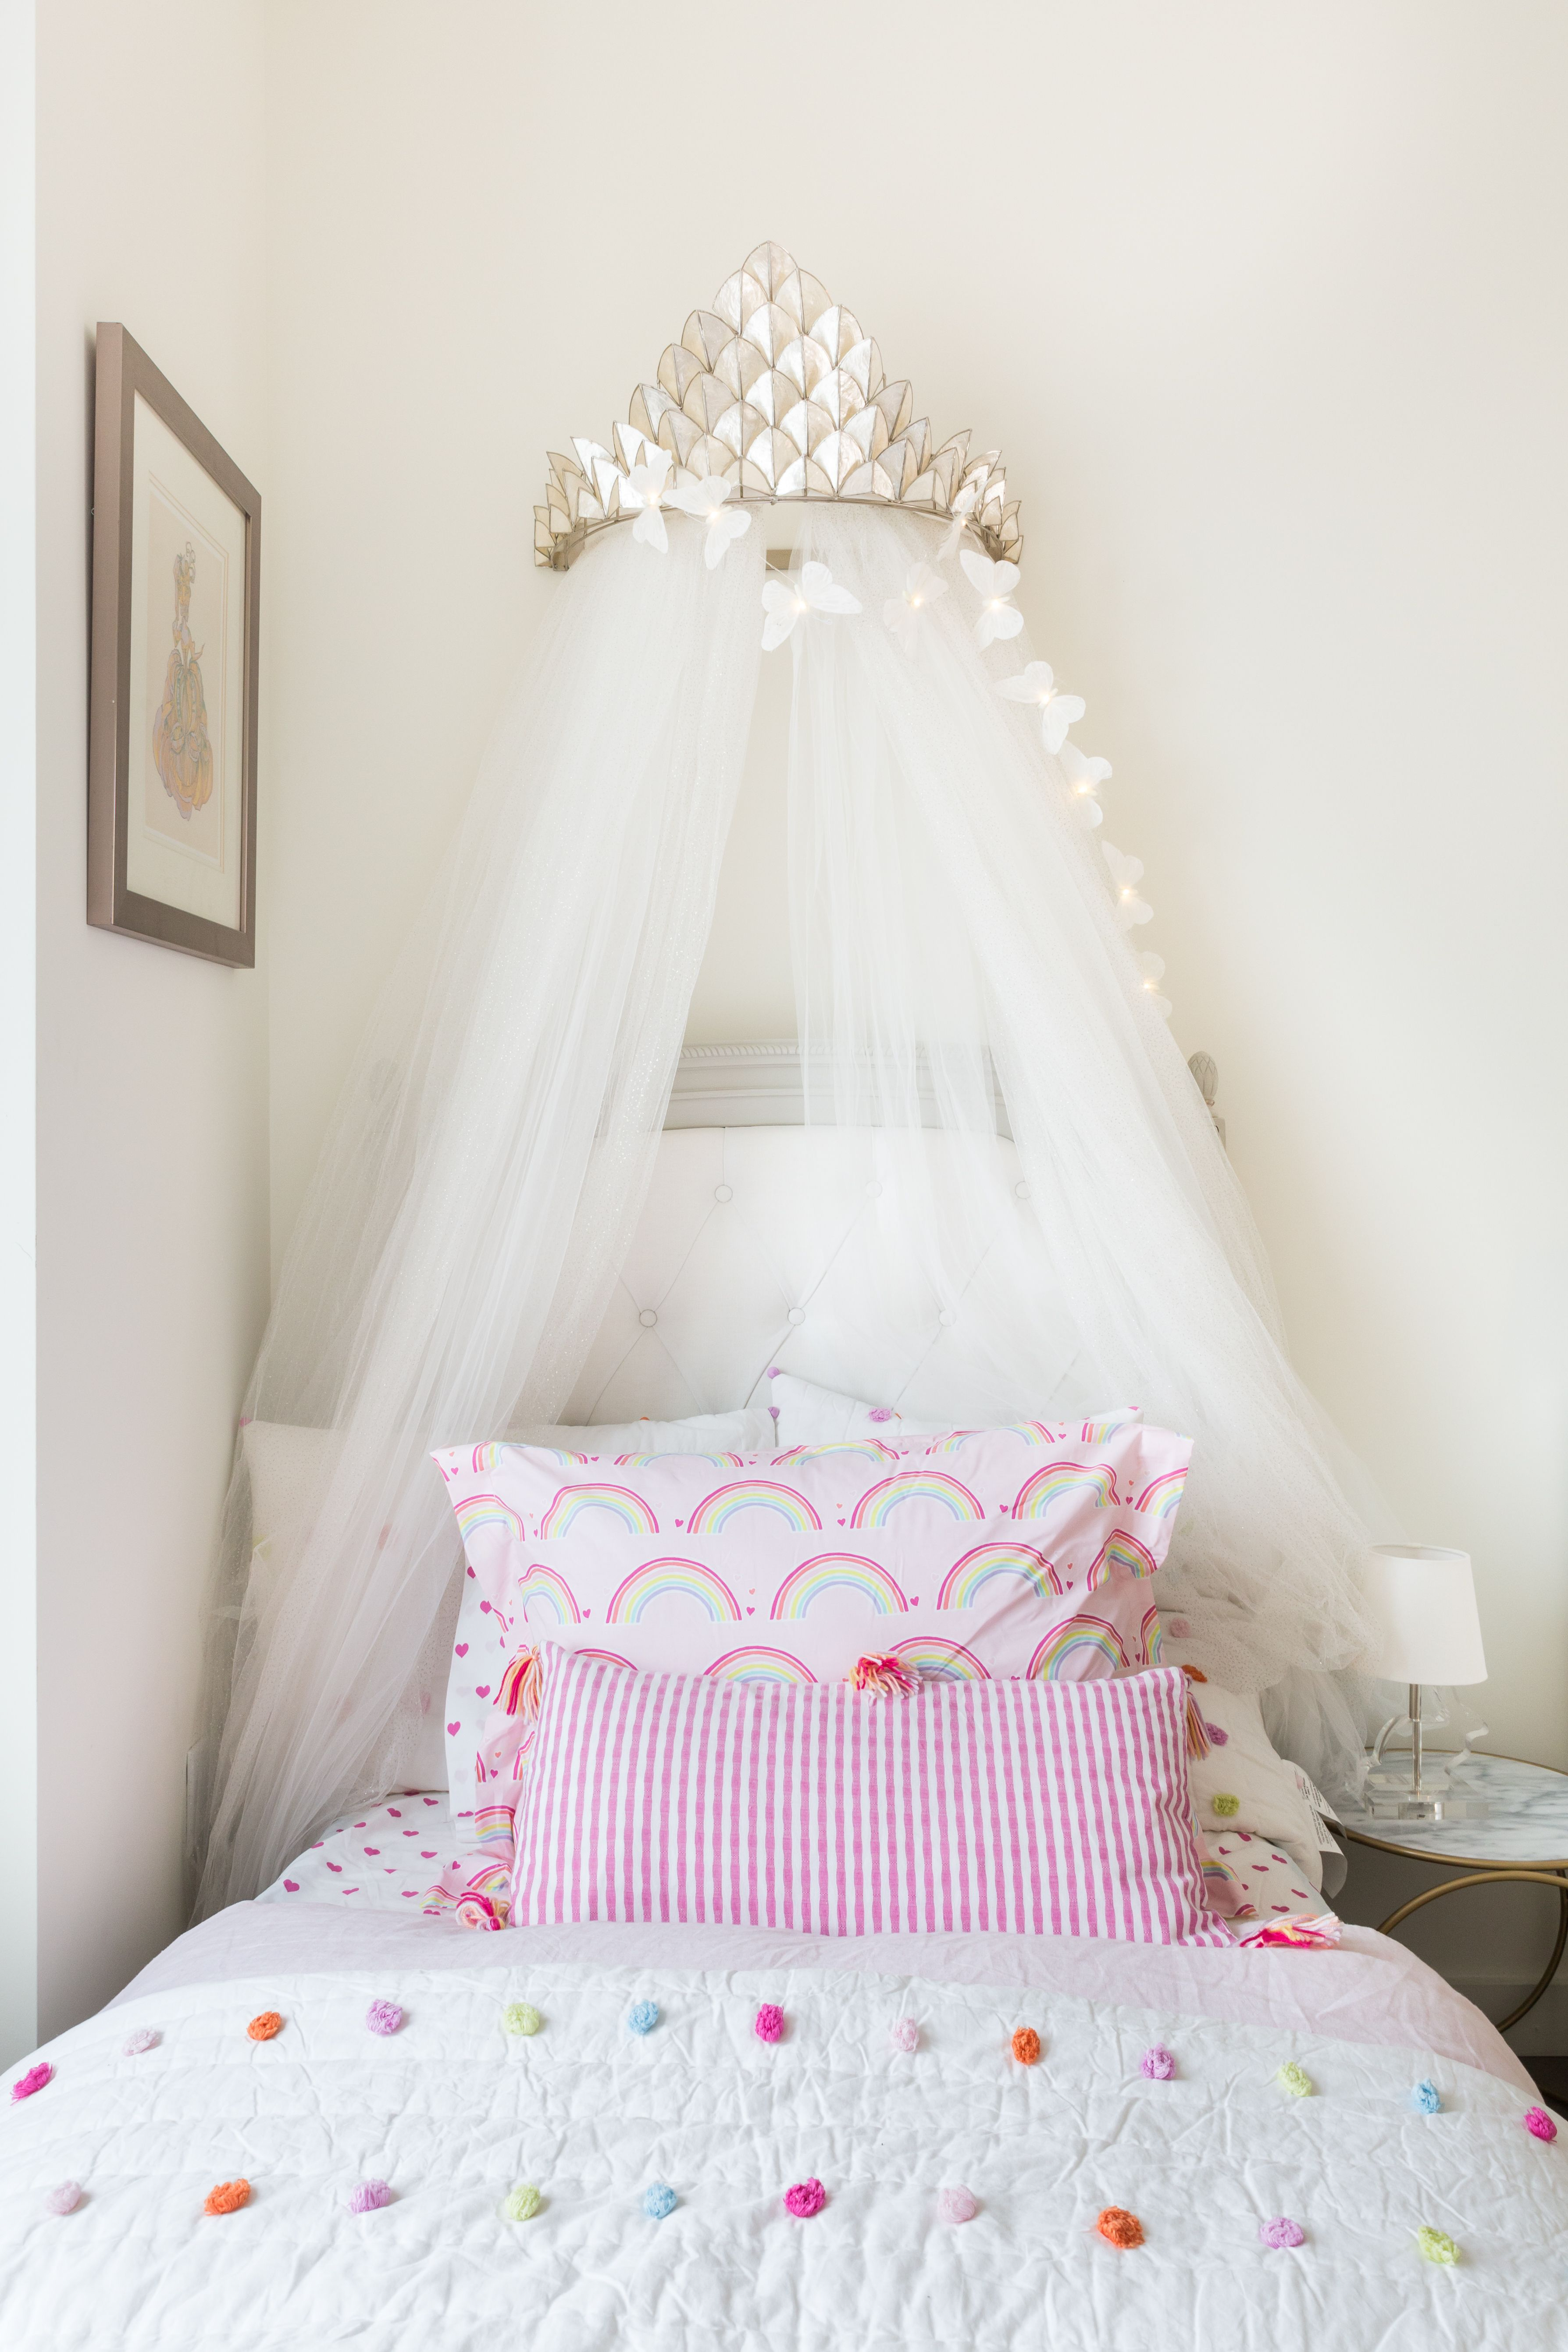 Best A Dreamy Bedroom My 6 Year Old And I Both Love Girl Room 400 x 300